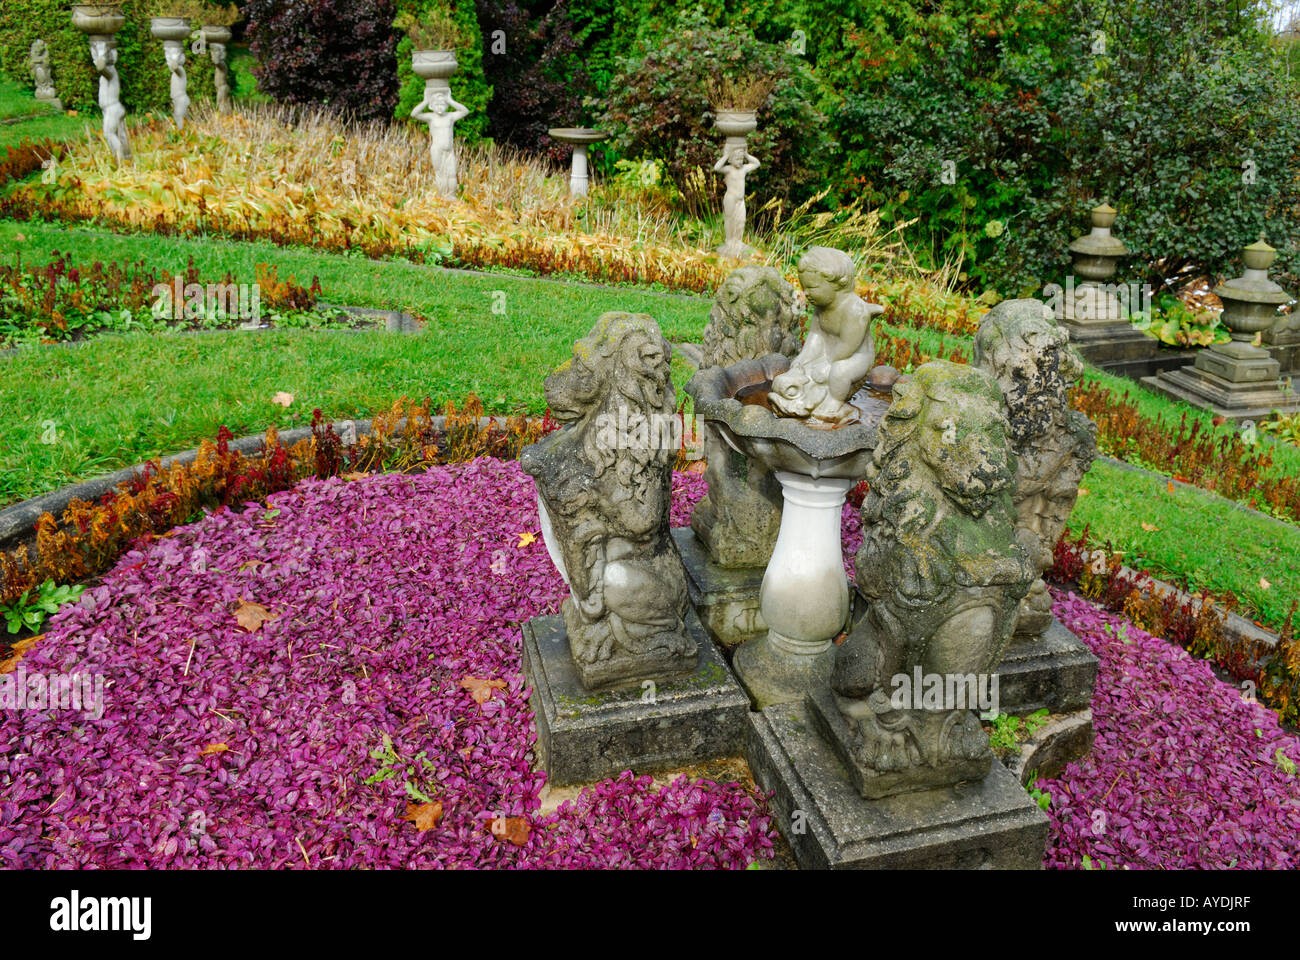 Faded Fall Garden With Lion And Cherub Statues And Purple Ajuga Ontario  Canada   Stock Image